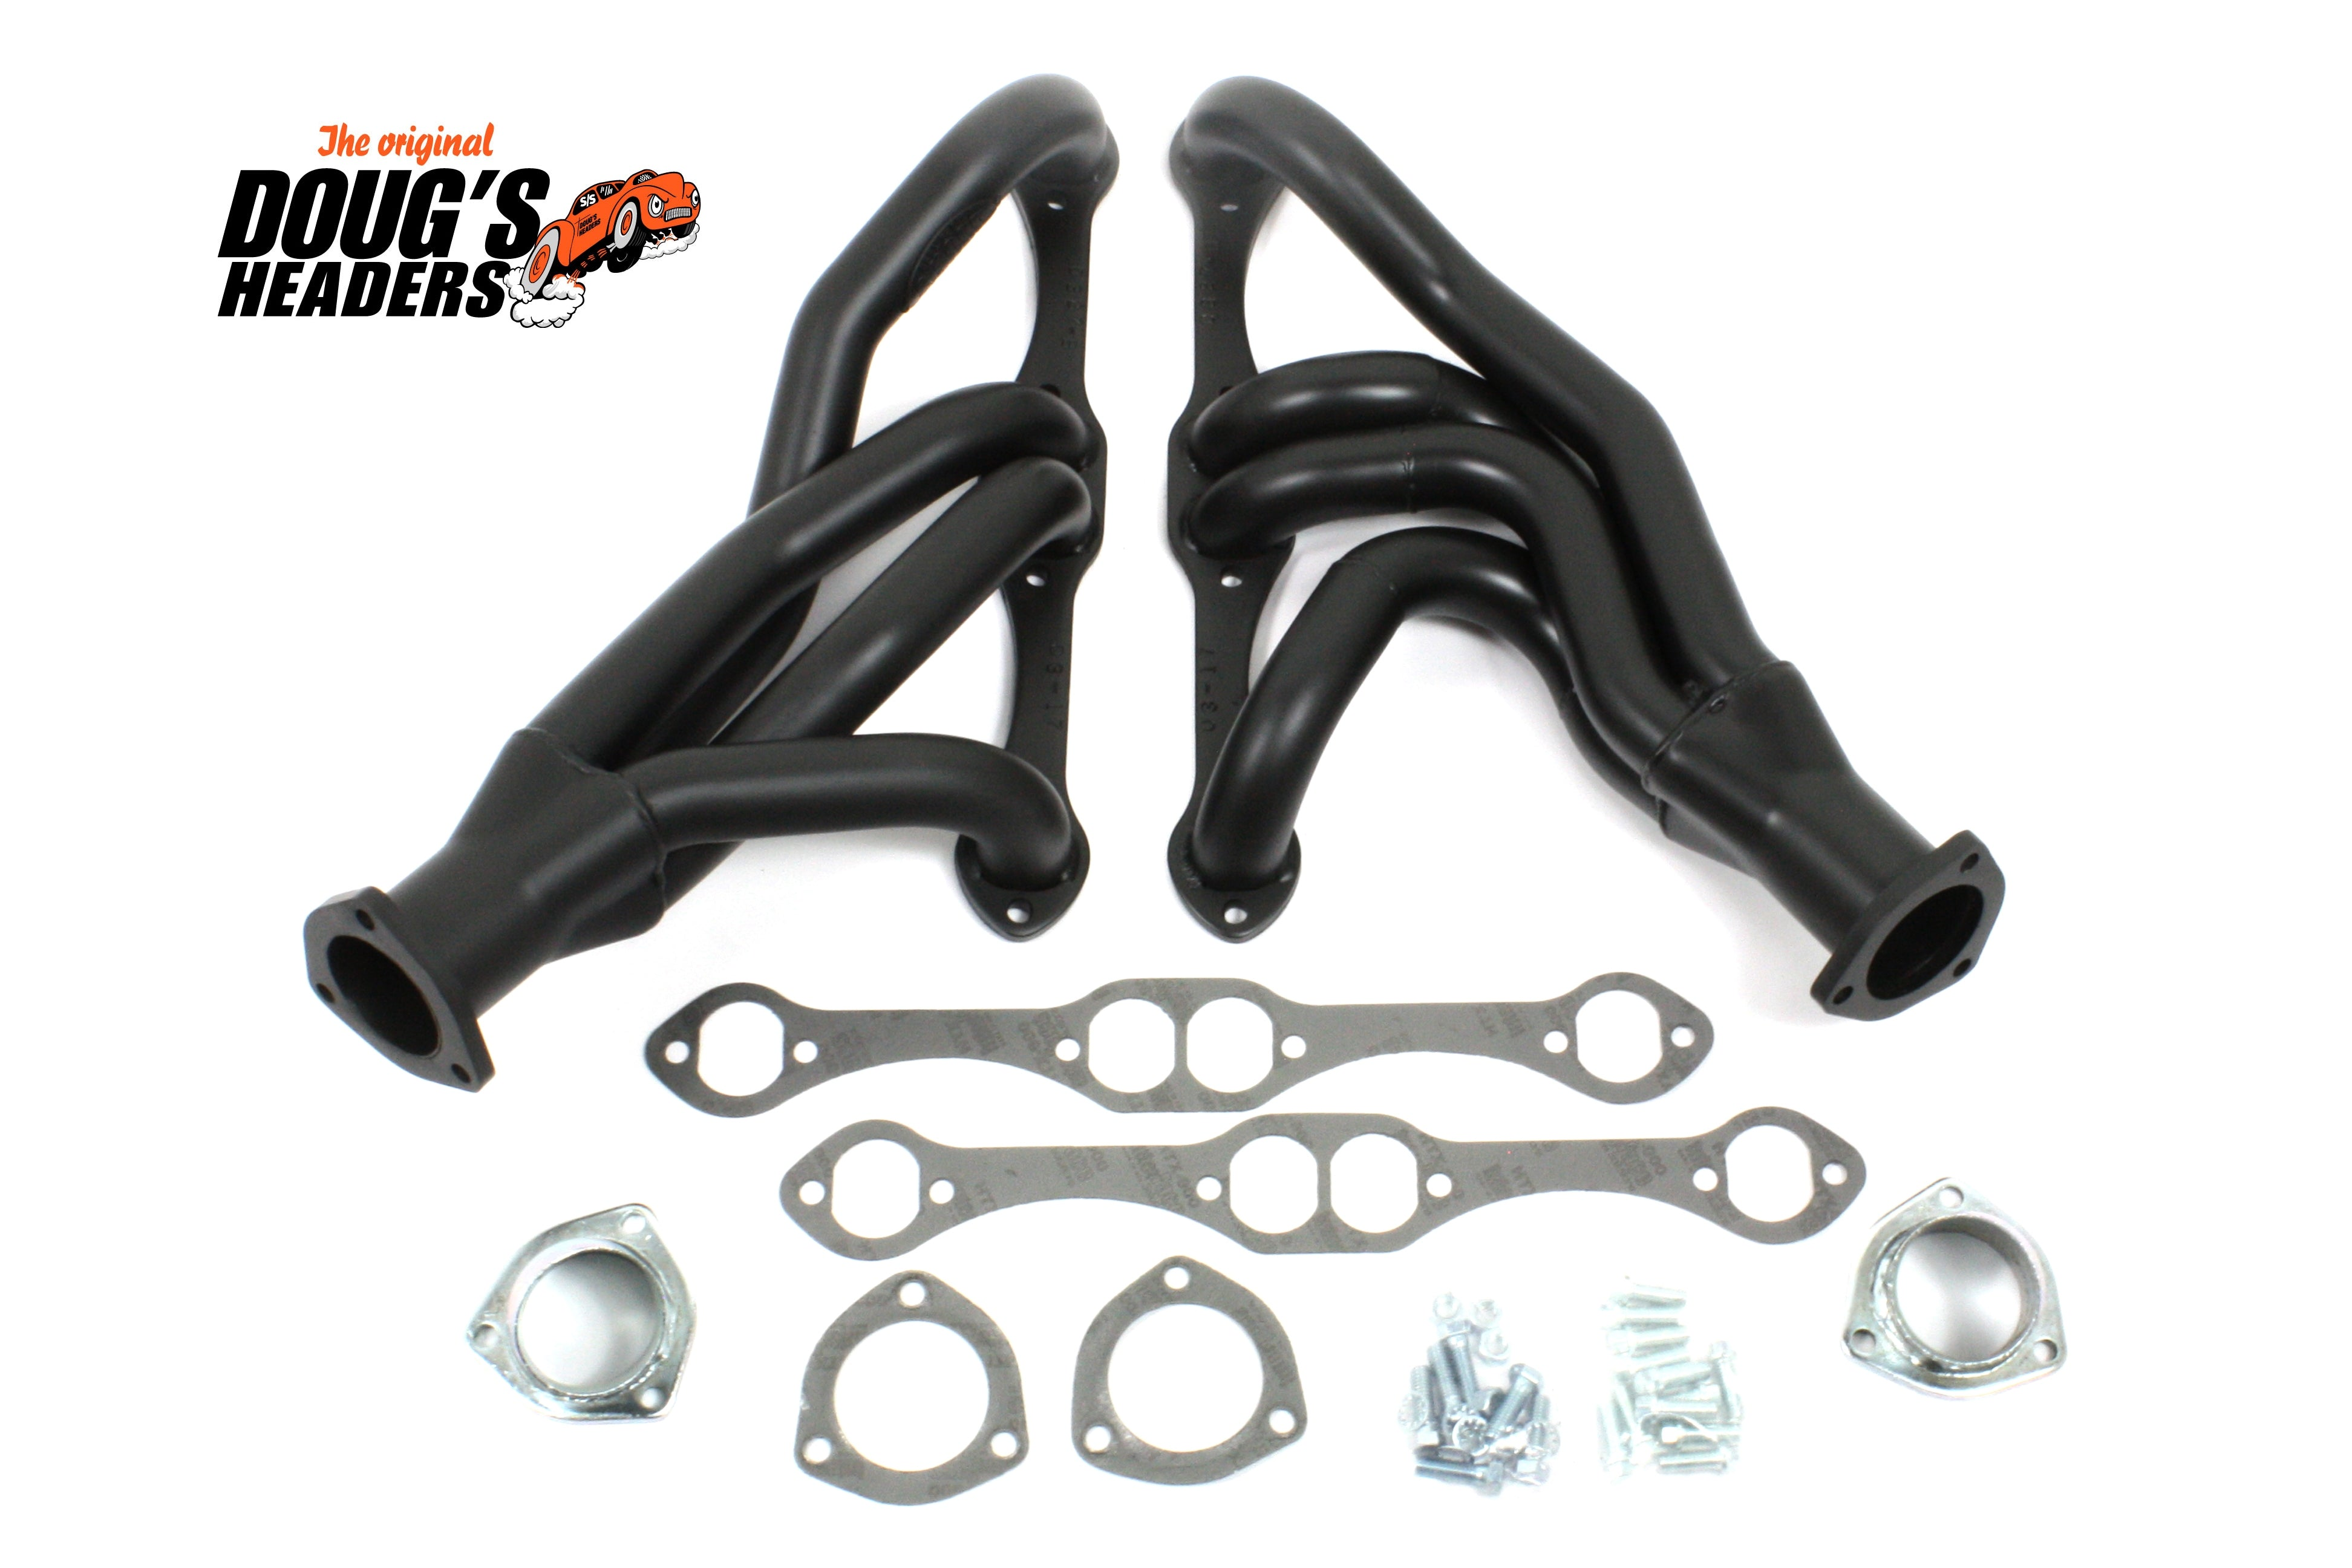 "Doug's Headers D327-B 1 5/8"" 4-Tube Shorty Header Chevrolet/Chevy II, Nova 265-400 Small block with a Detroit Speed rack front clip conversion Hi-Temp Black Coating"